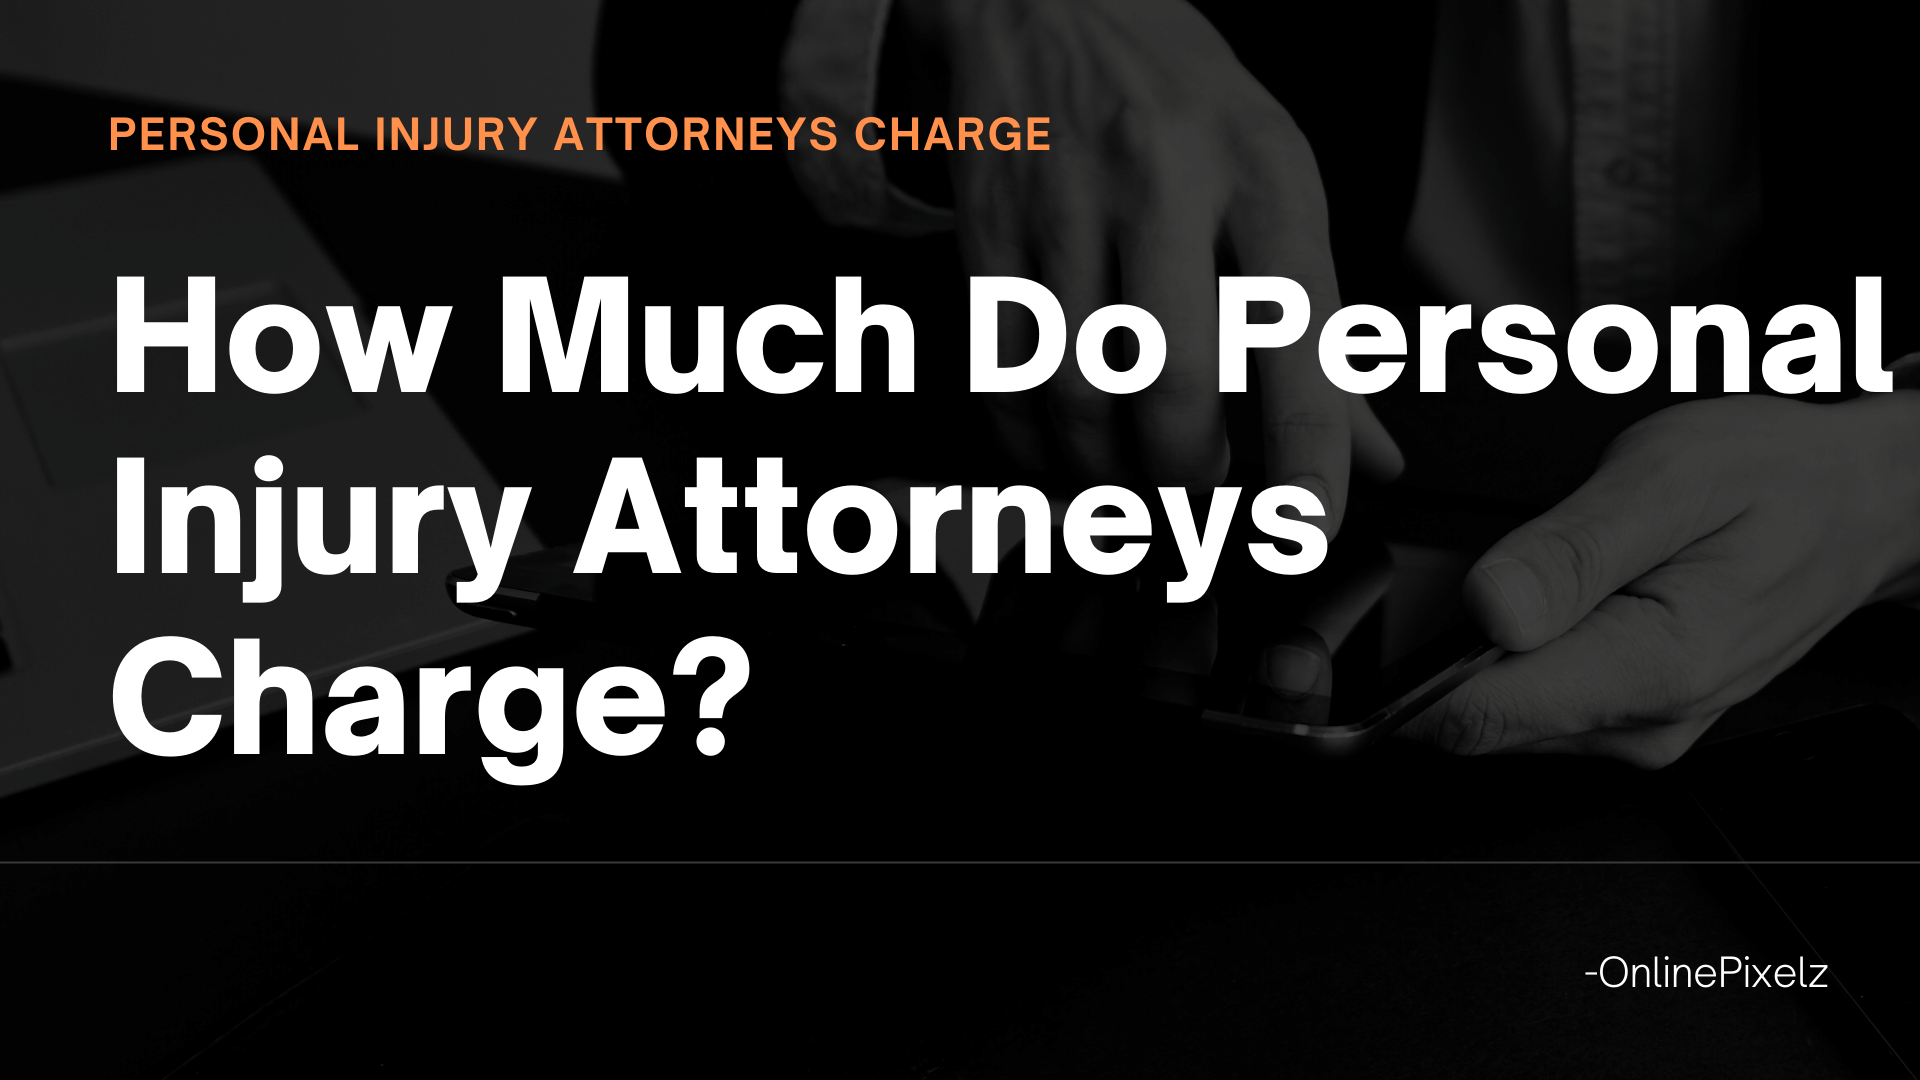 How Much Do Personal Injury Attorneys Charge